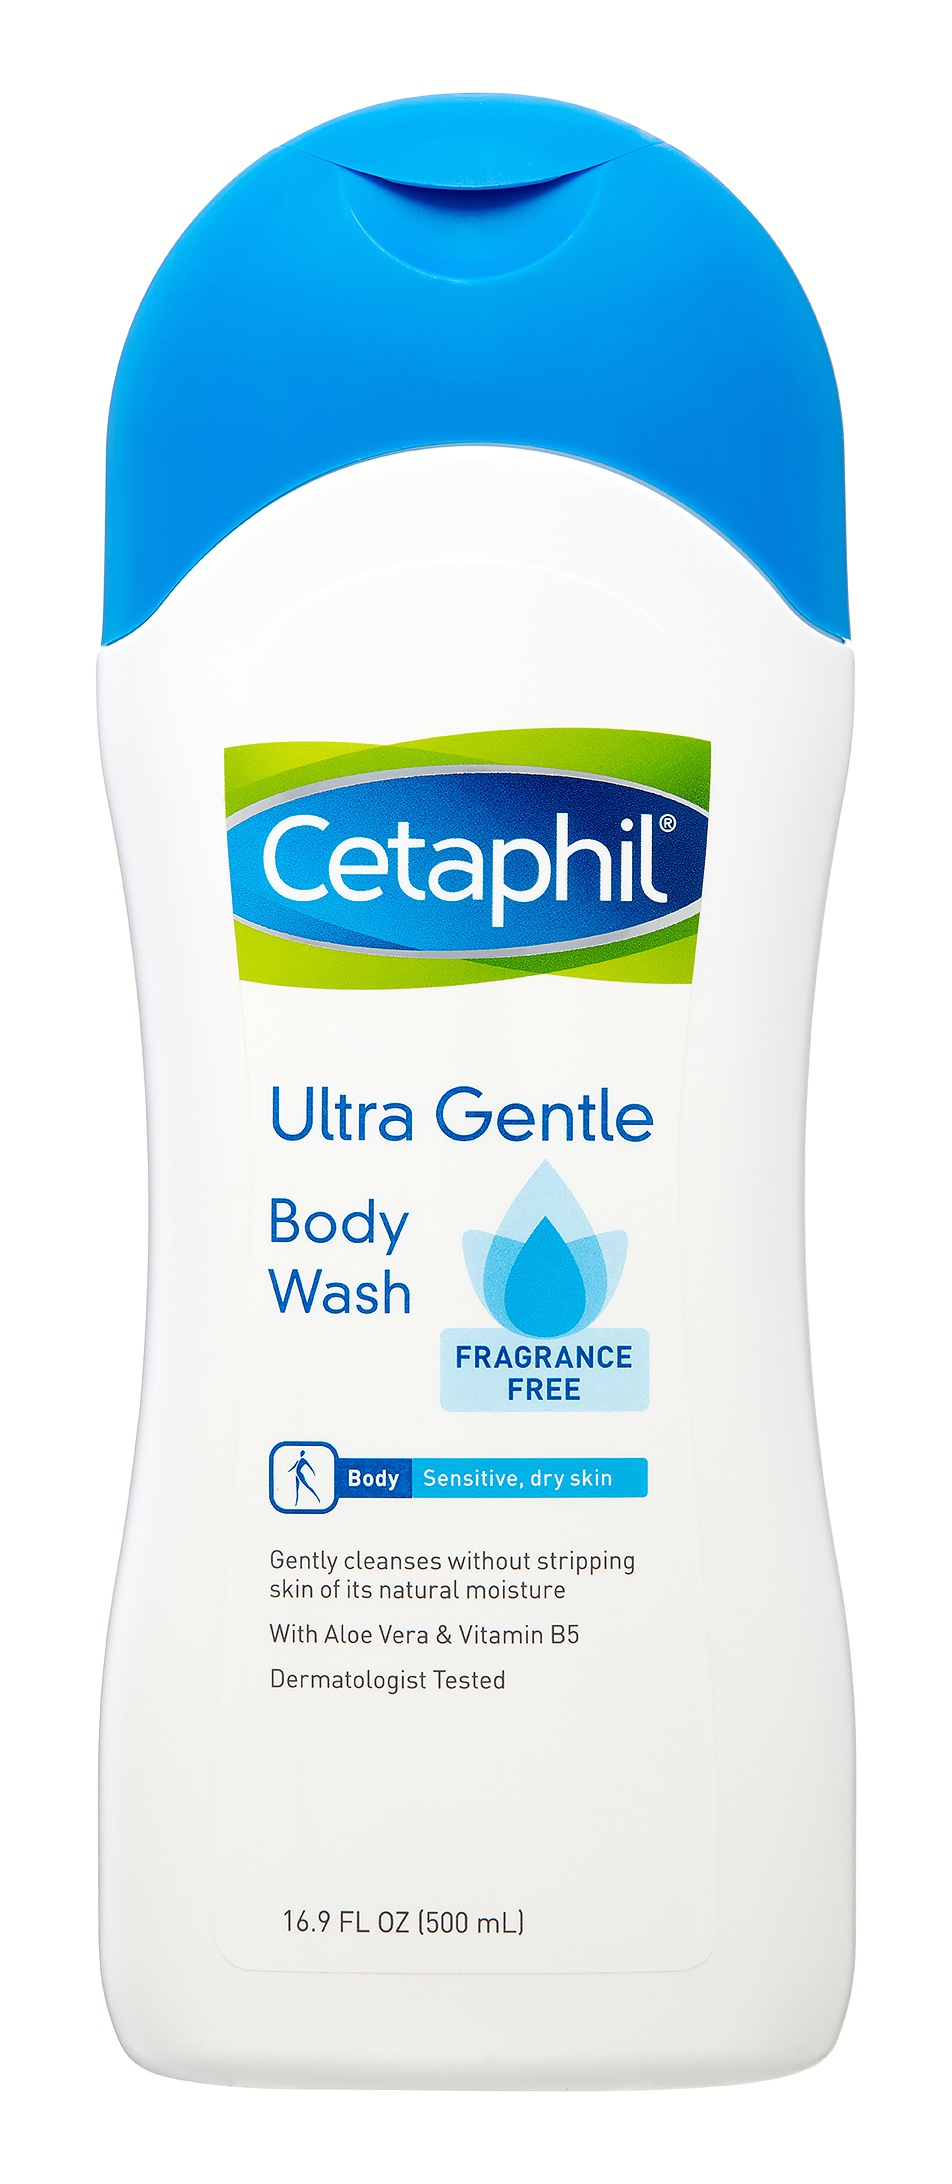 Cetaphil Ultra Gentle Body Wash Fragrance Free